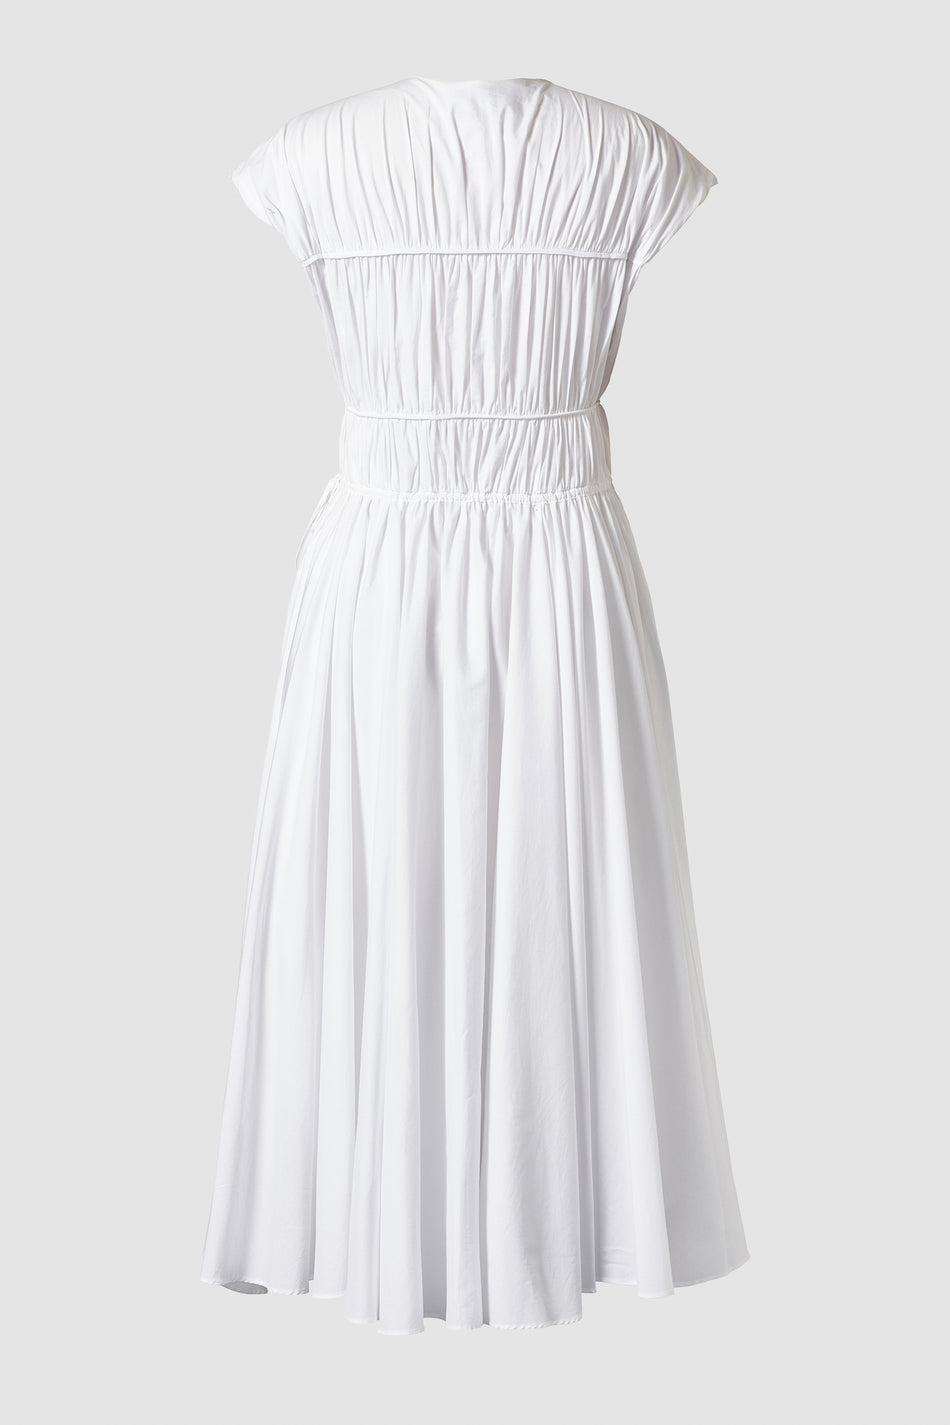 Tove Ceres Cotton Midi Dress White